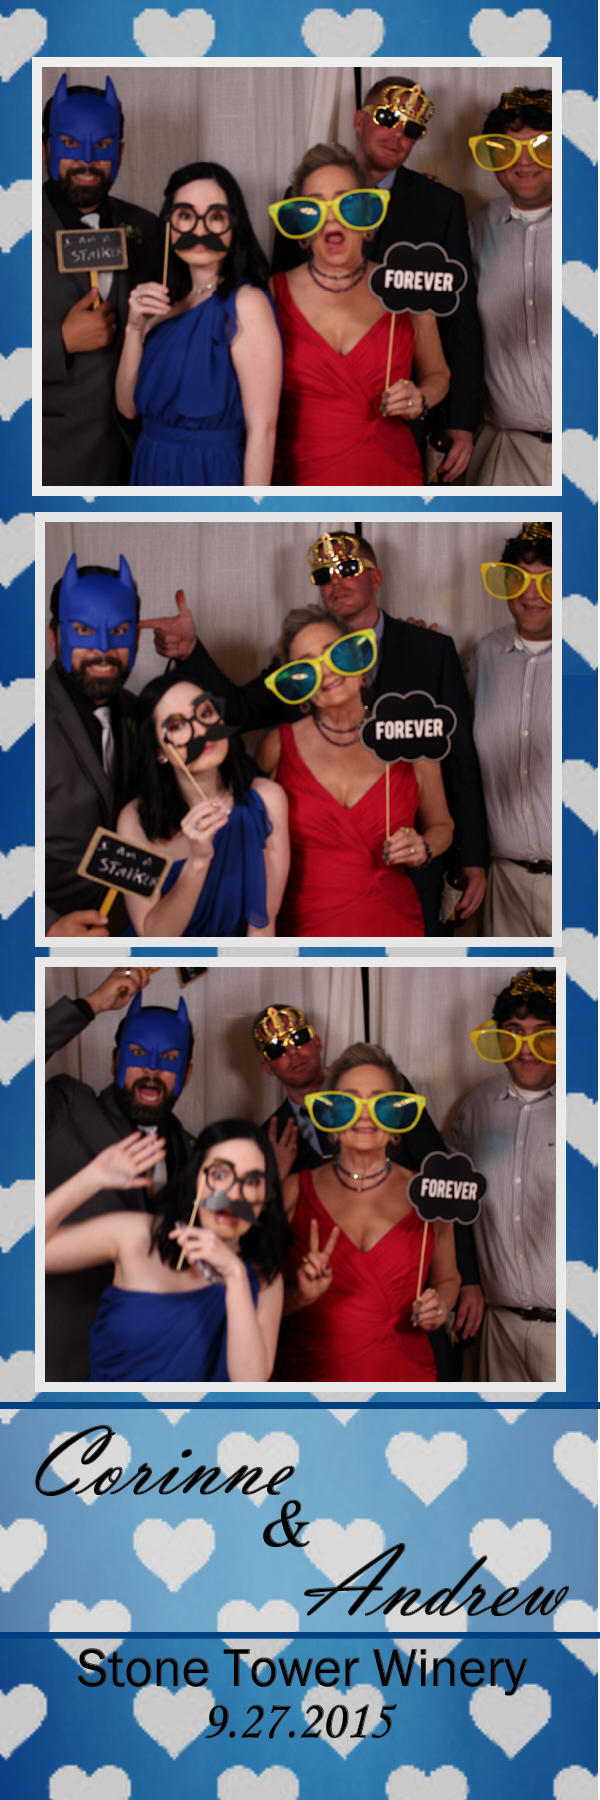 Guest House Events Photo Booth C&A (24).jpg